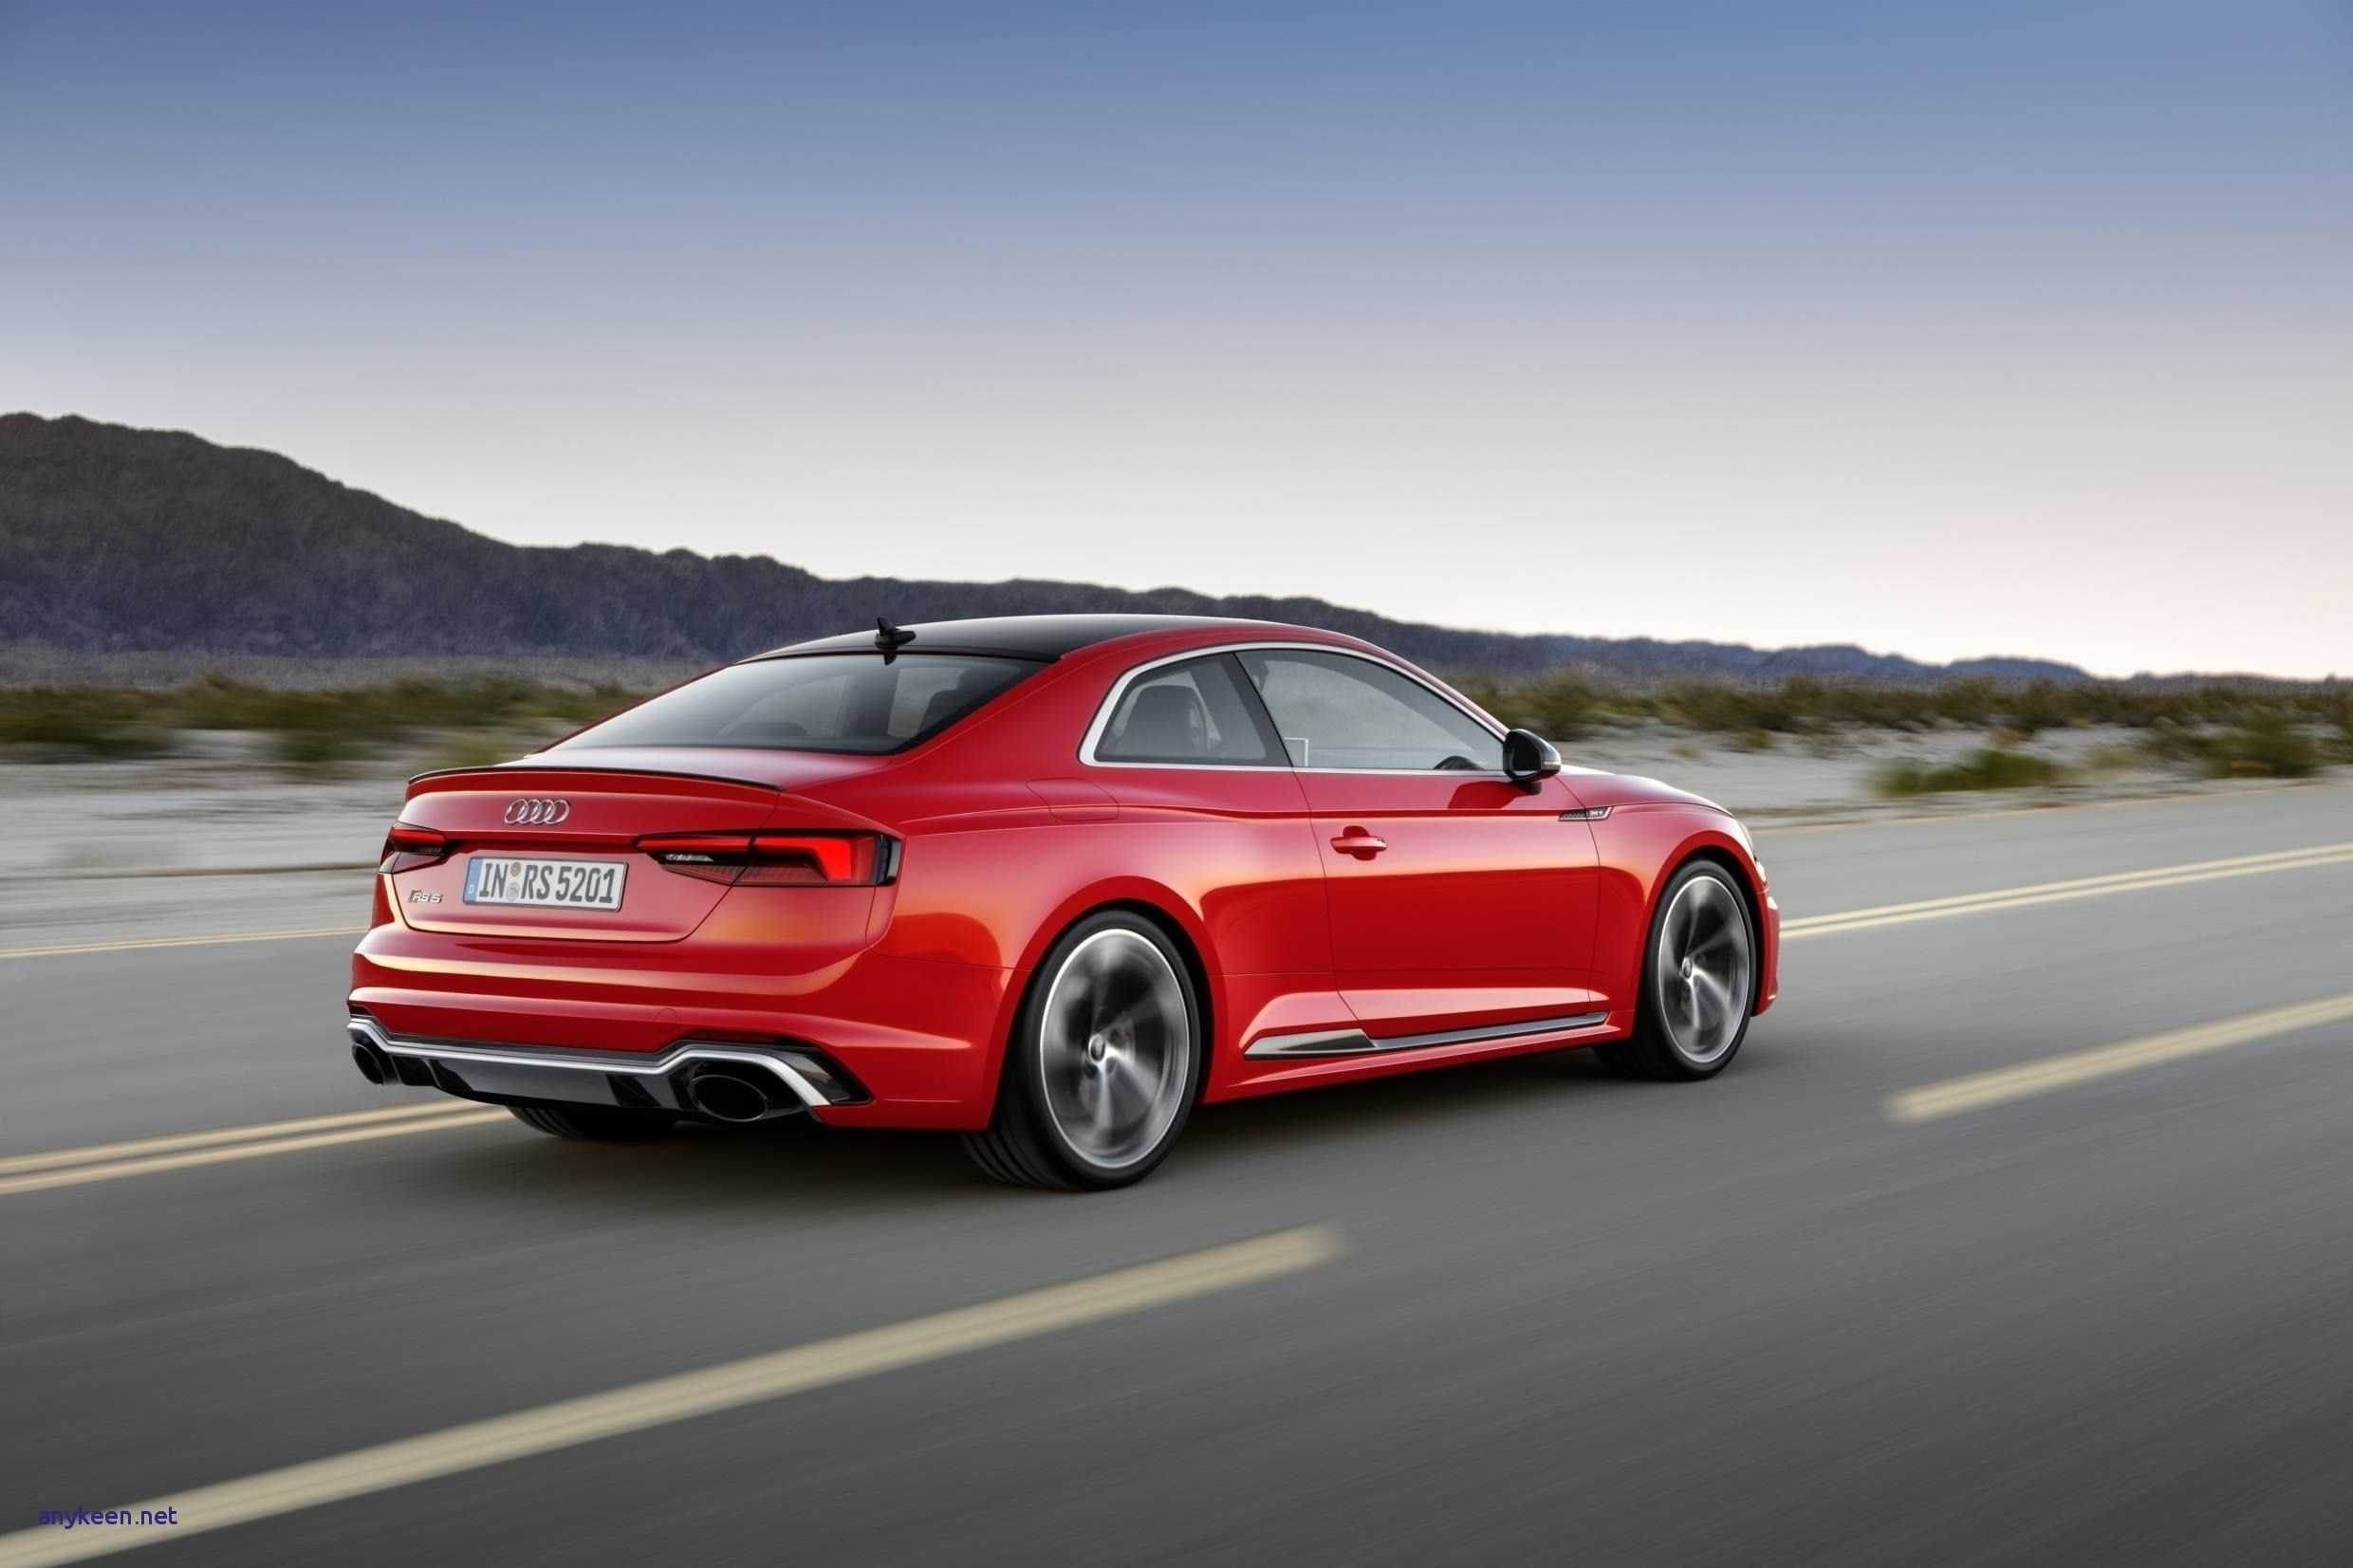 96 A 2019 Audi Rs5 Tdi Research New